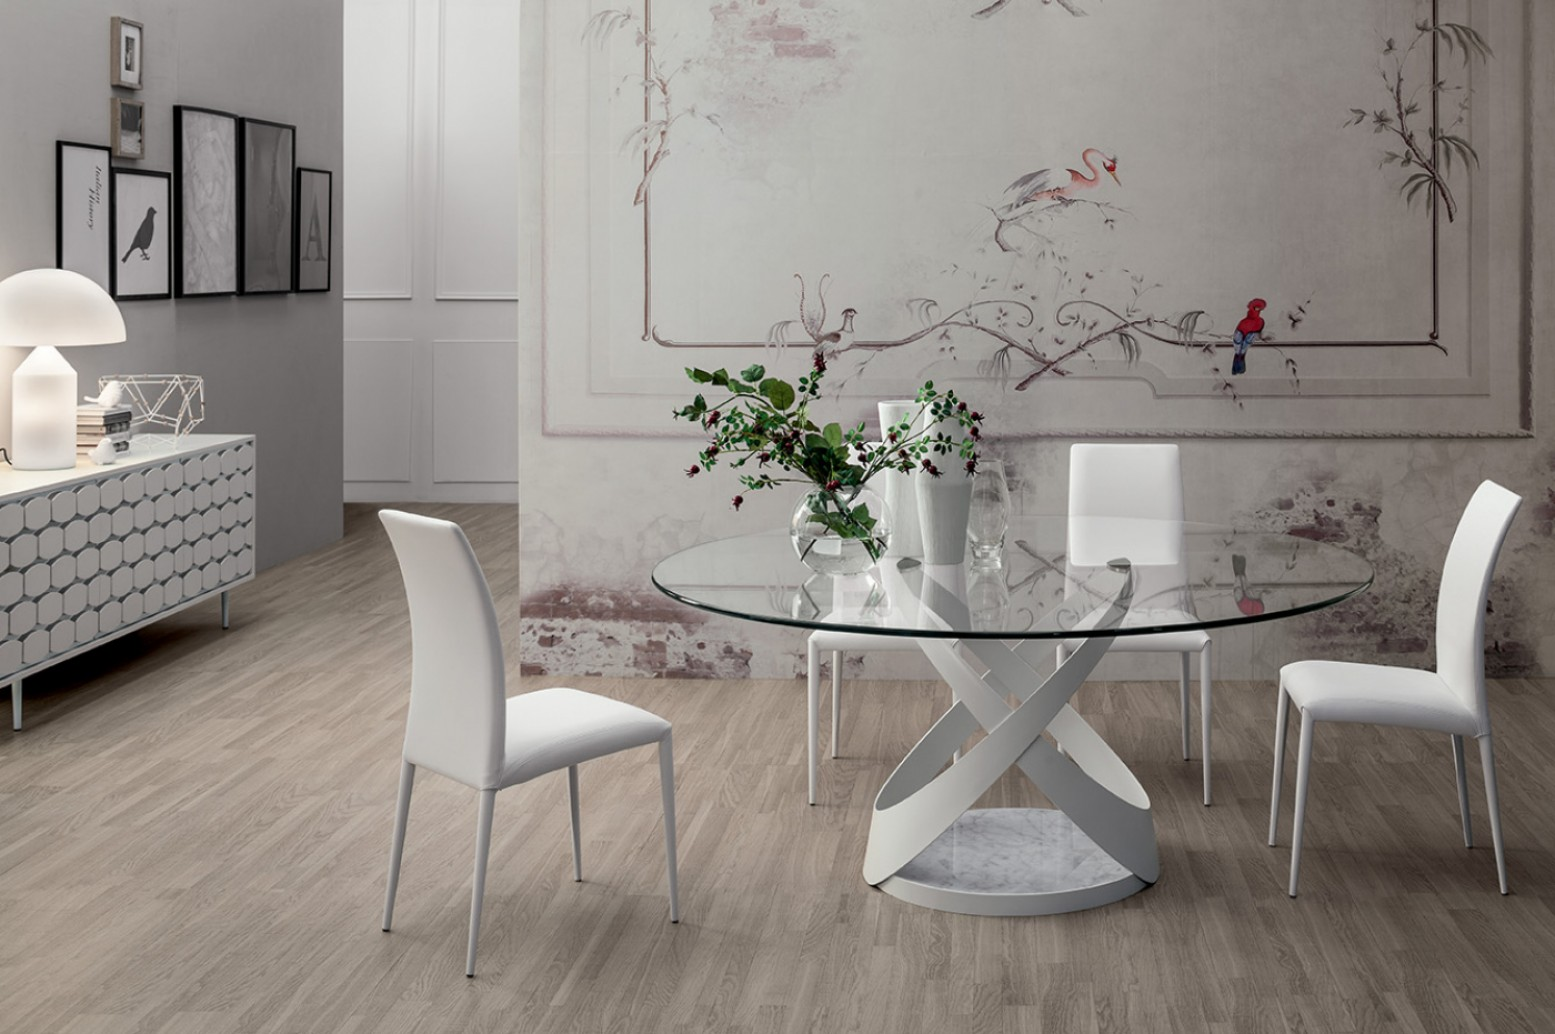 Capri Small Round Dining Table Matt White Metal Base Carrara White Marble Extra Clear Transparent Glass Top 0 47 Thickness Buy Online At Best Price